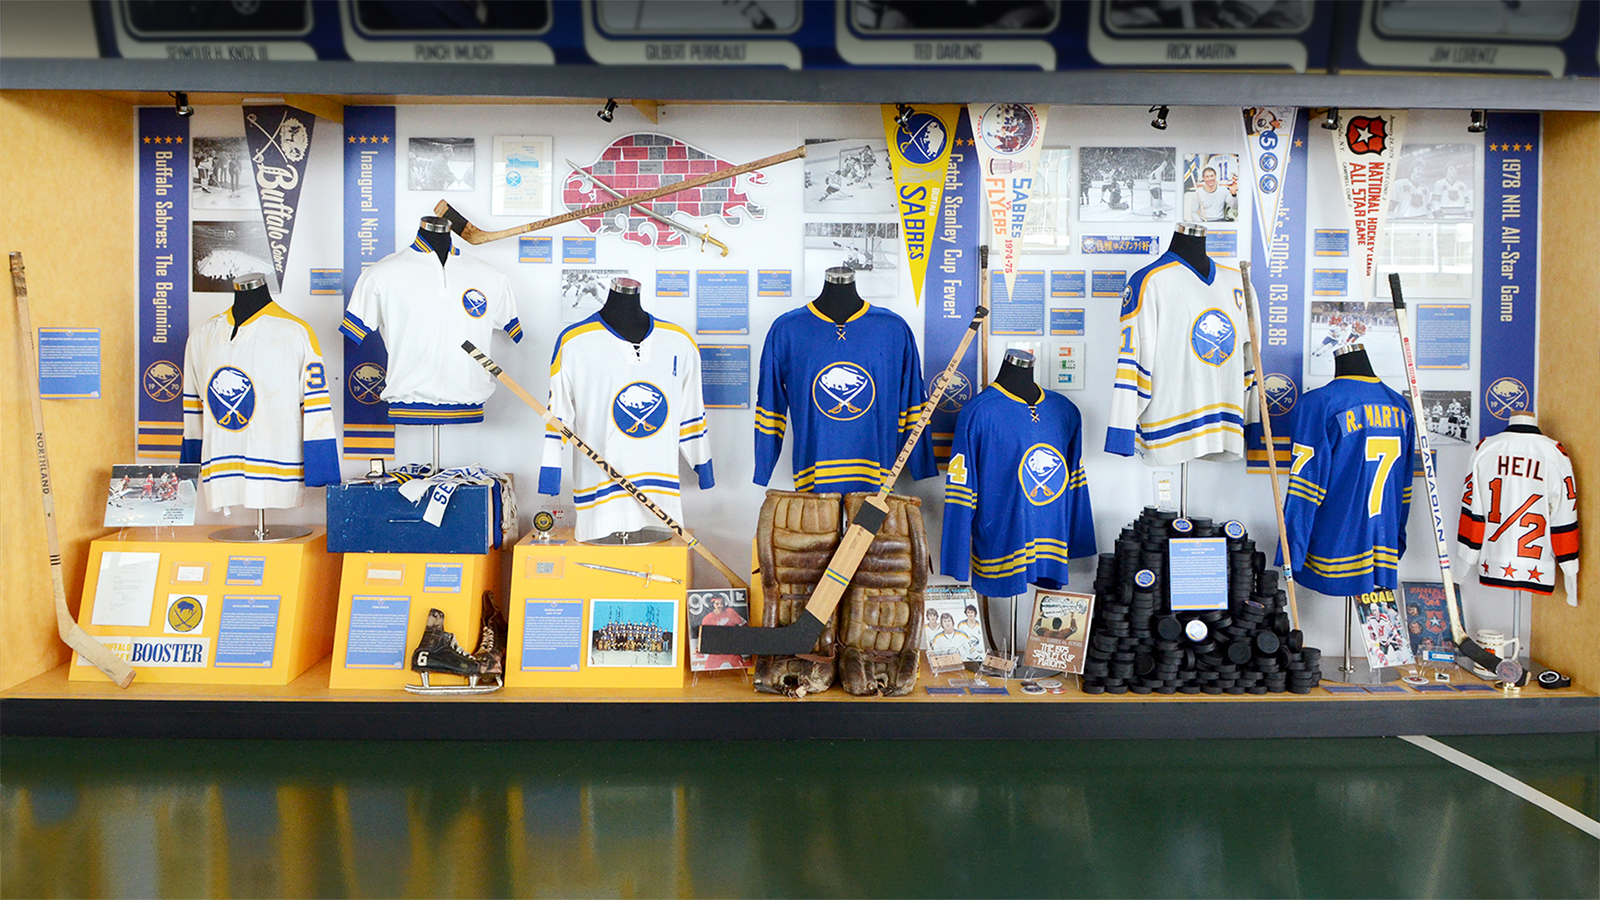 One of two large display cases that makes of the Sabres 40th Anniversary exhibit, packed full of hockey memorabilia